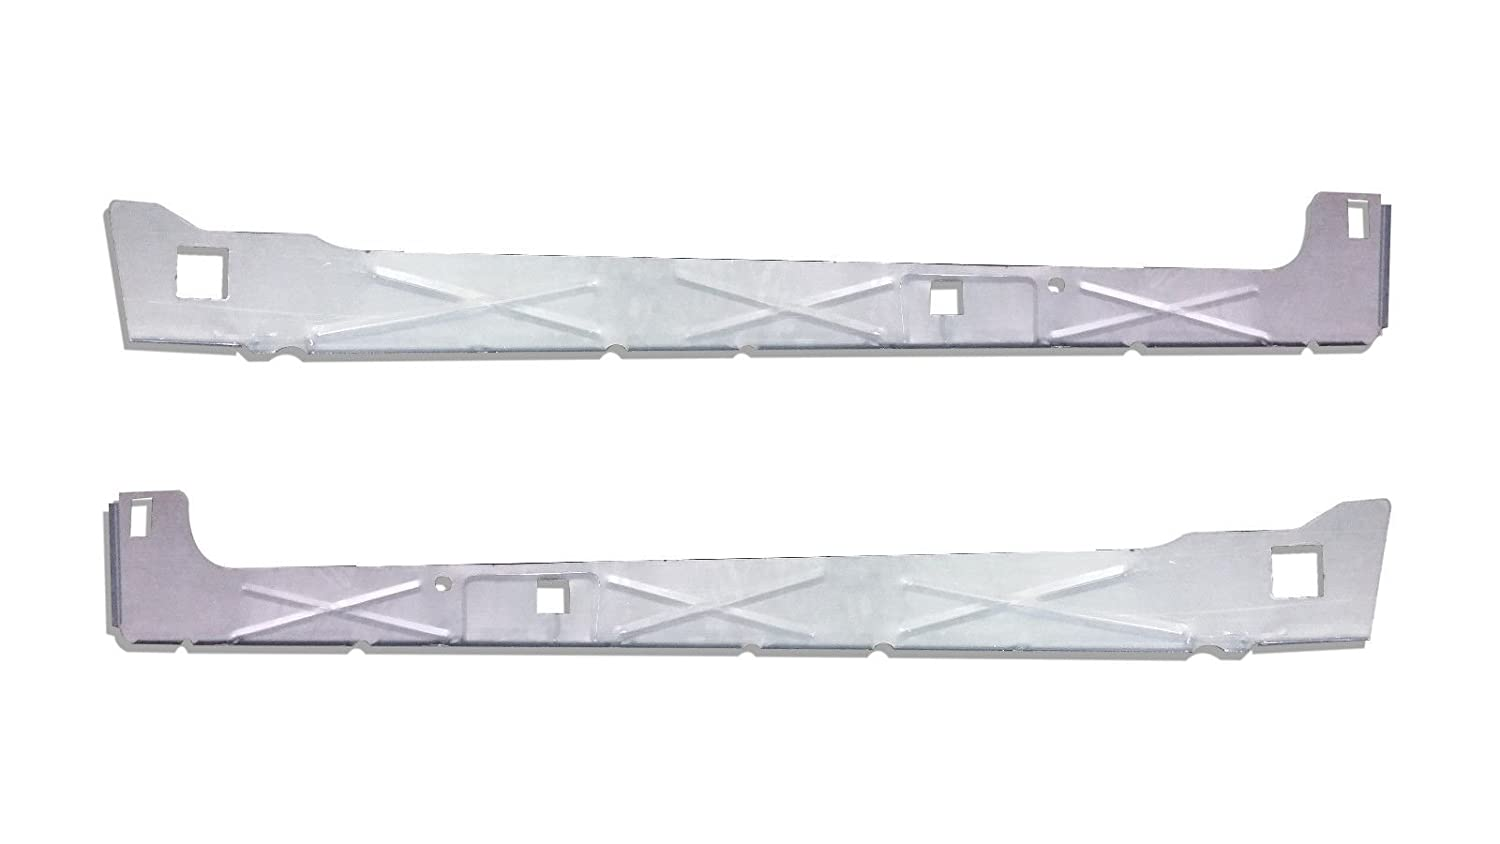 Motor City Sheet Metal - Works With SILVERADO INNER ROCKER PANELS 1999-2007 EXTENDED CAB - 1 PAIR